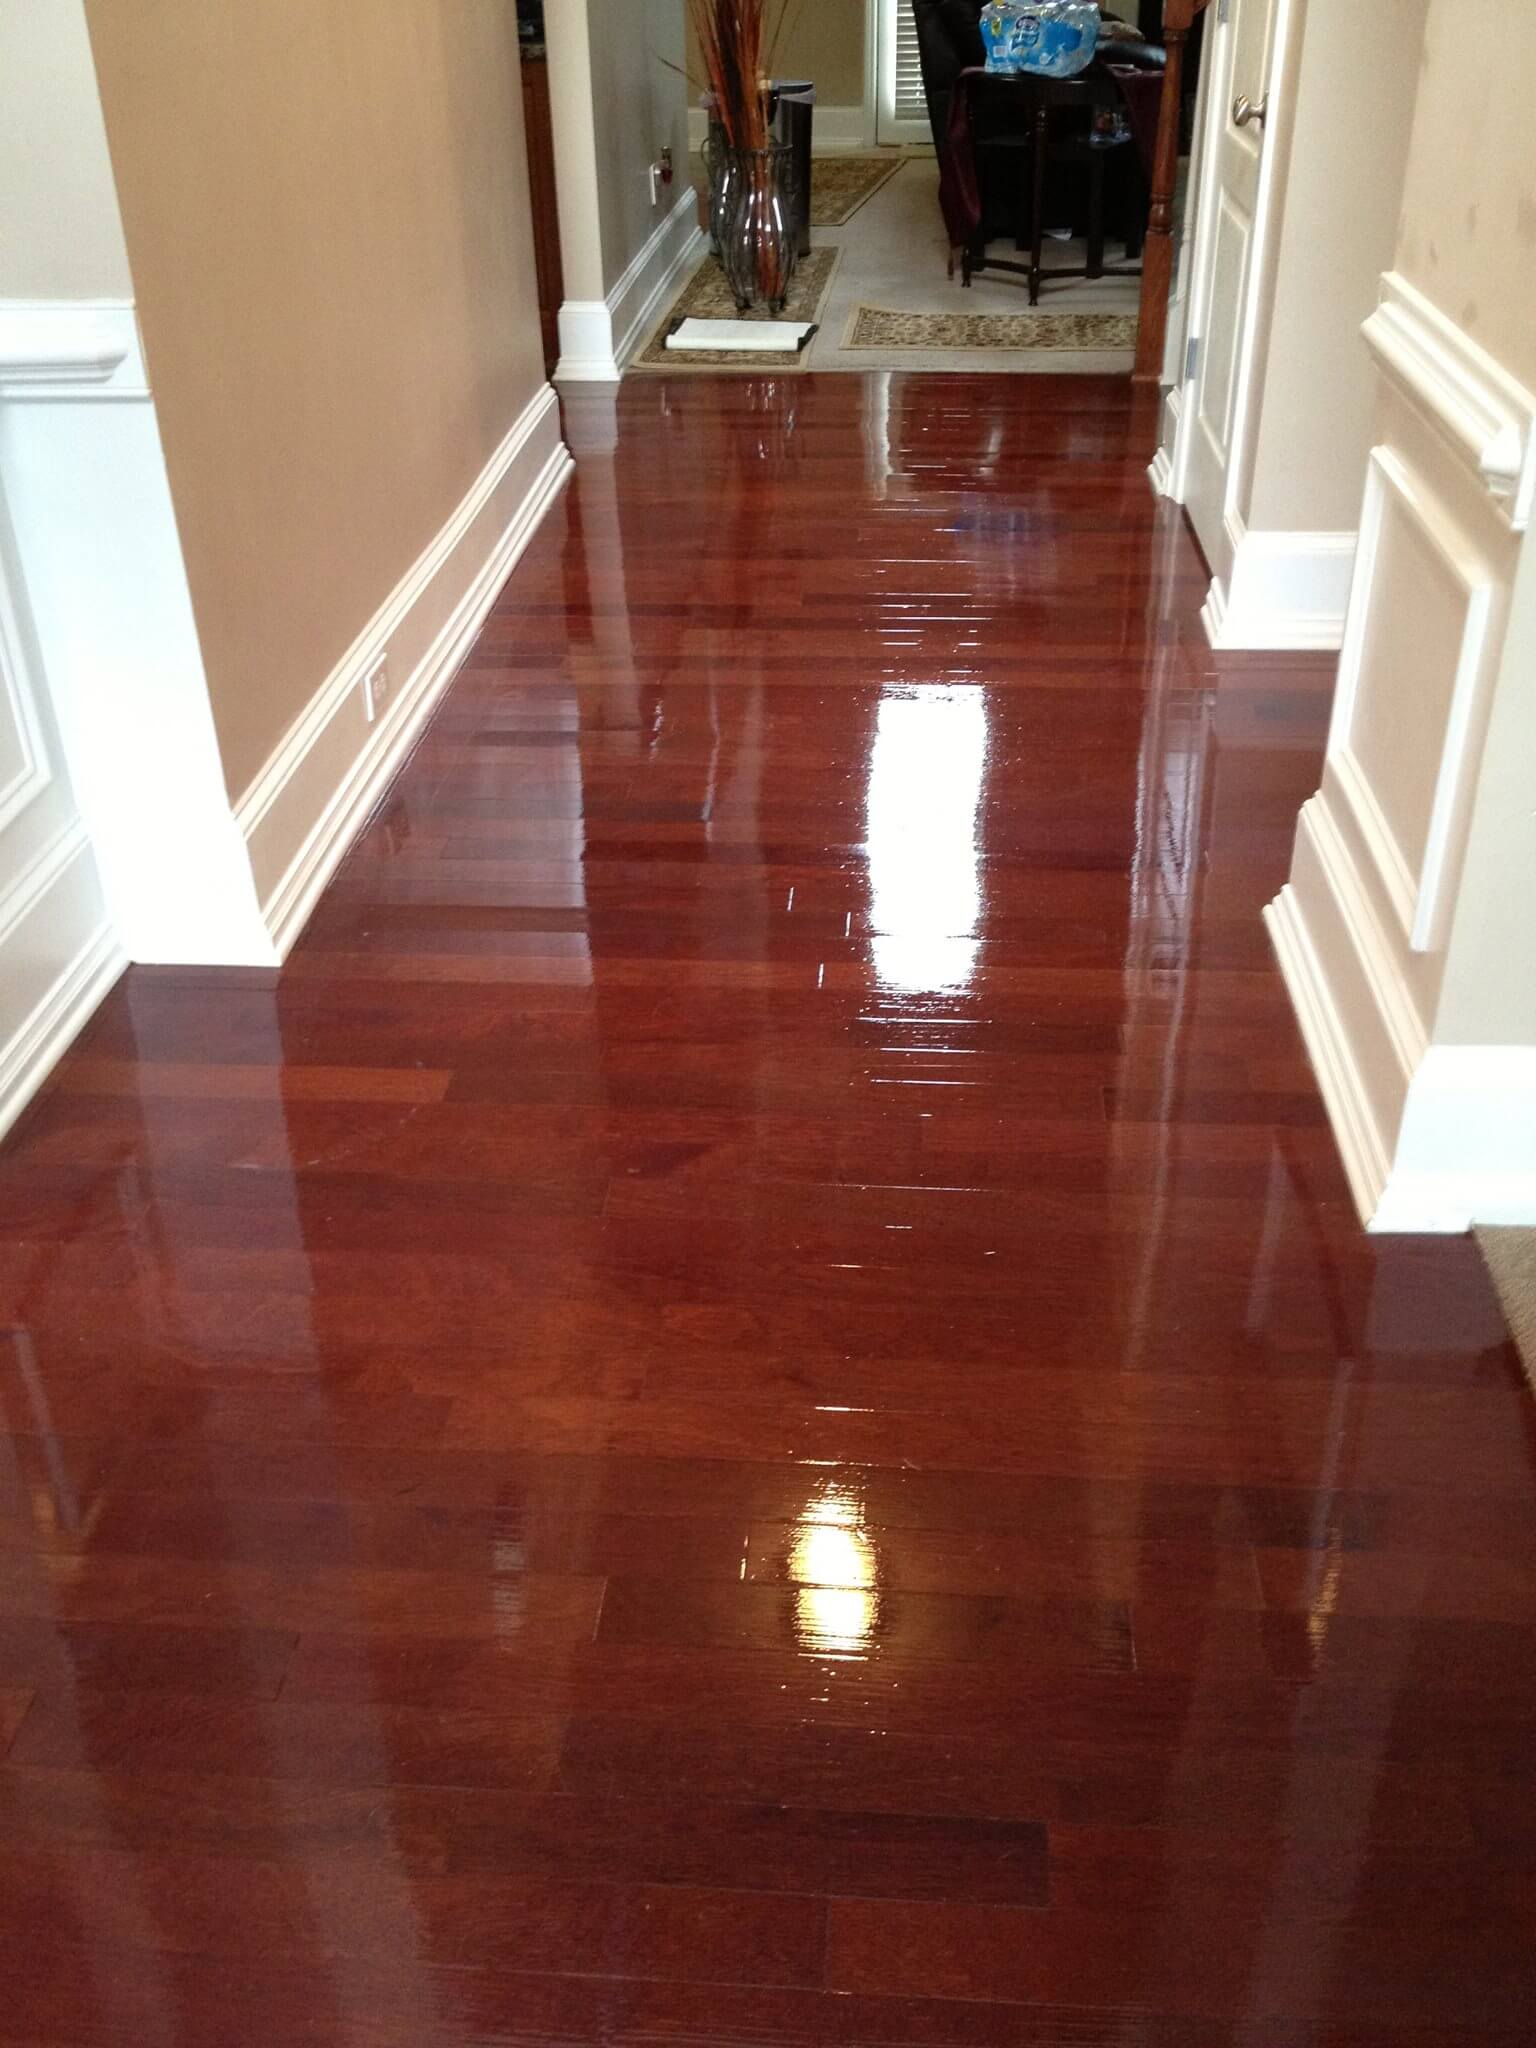 a refinished hardwood floor in worthington, oh